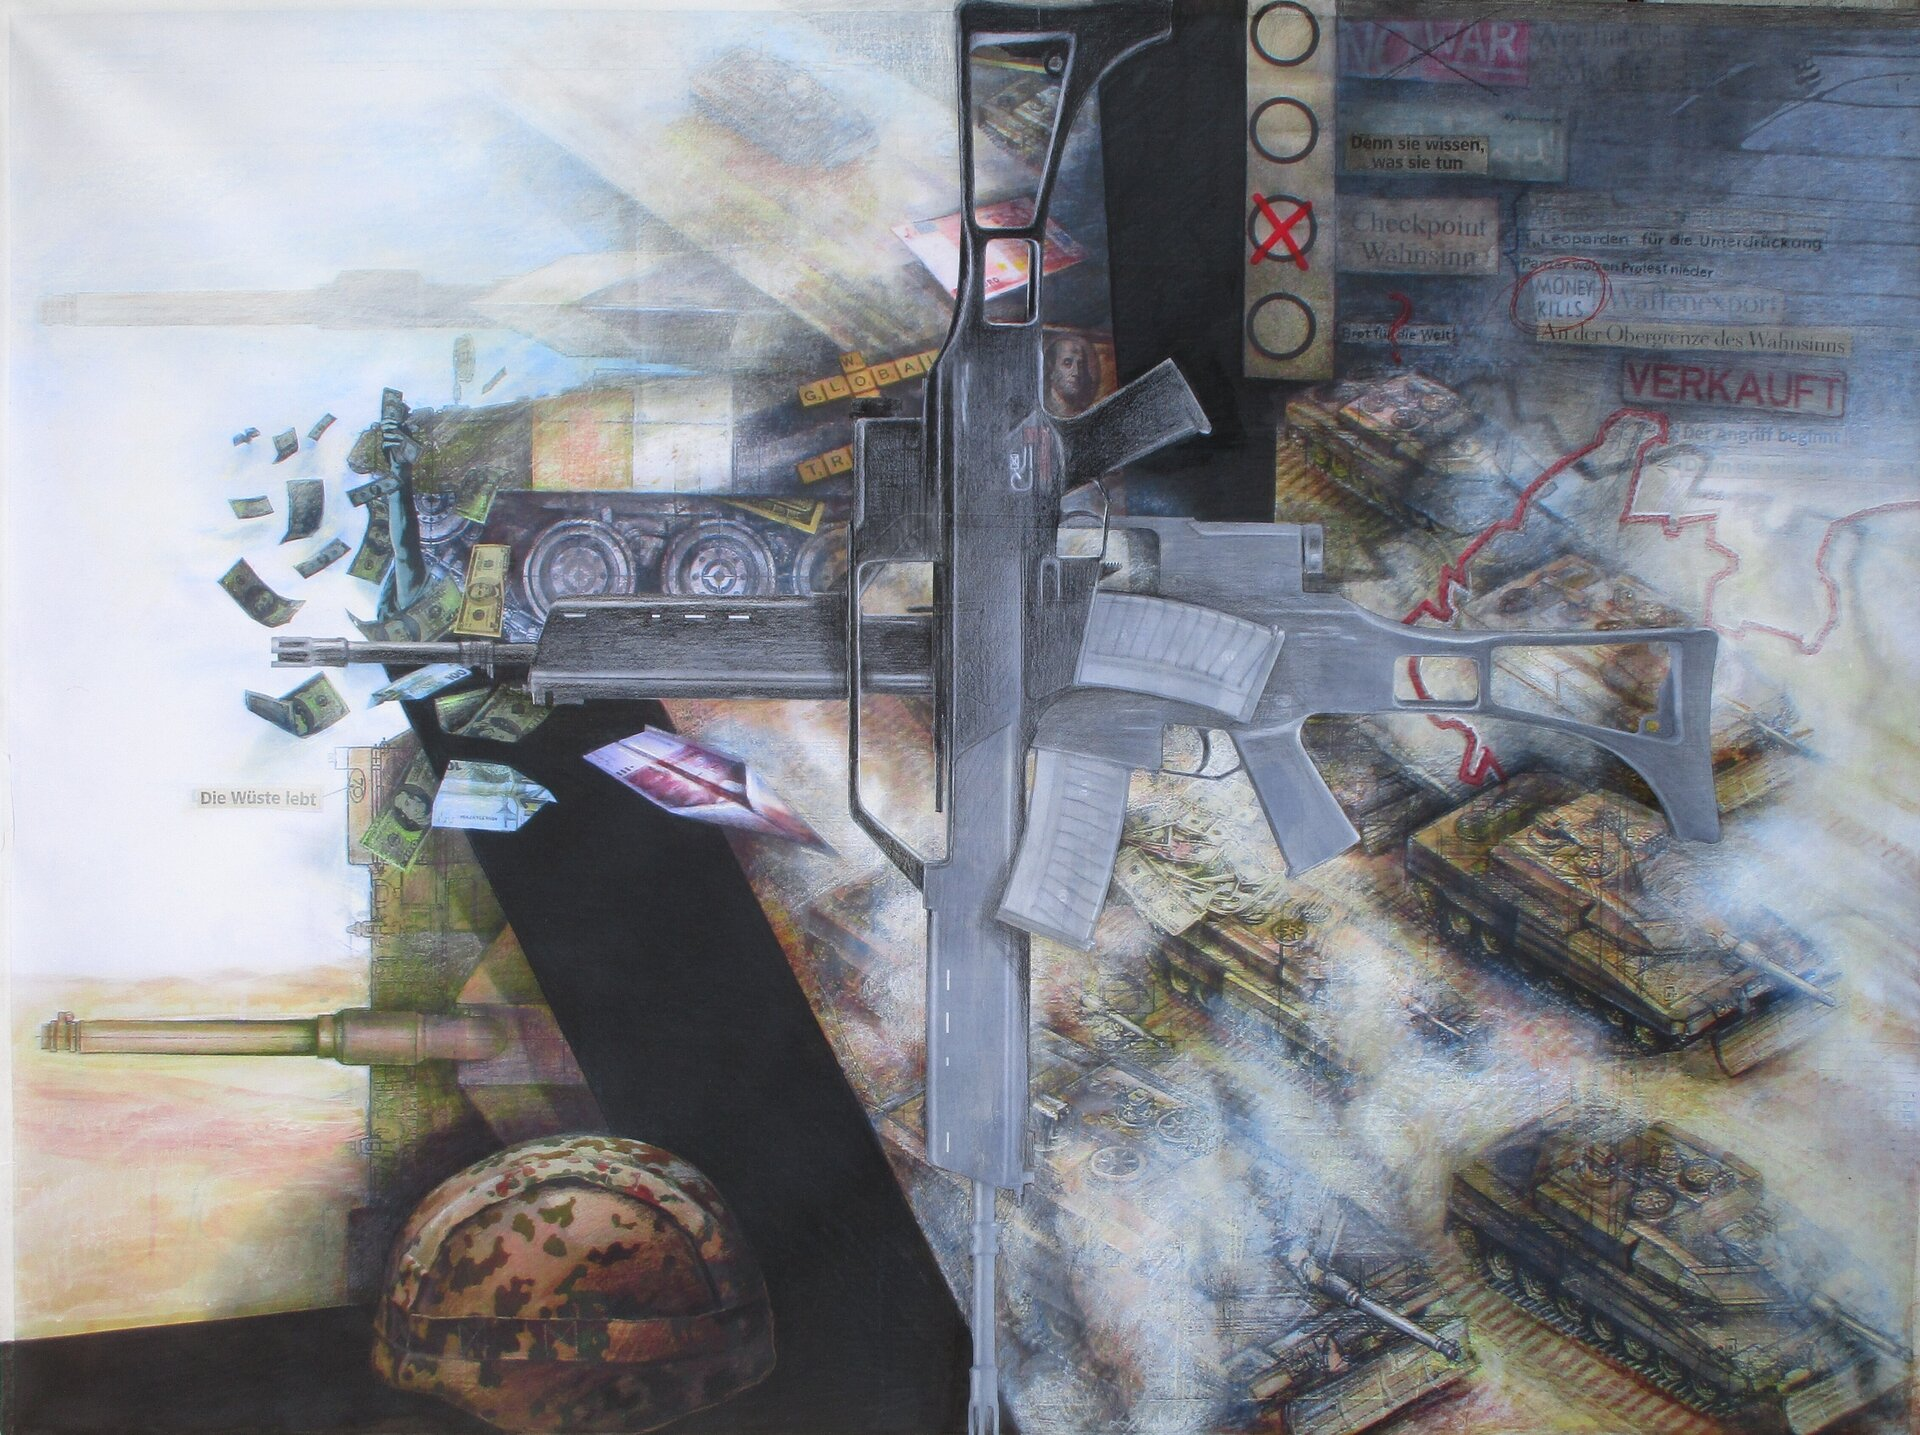 made in Germany -- 90 x 120 cm, 2021